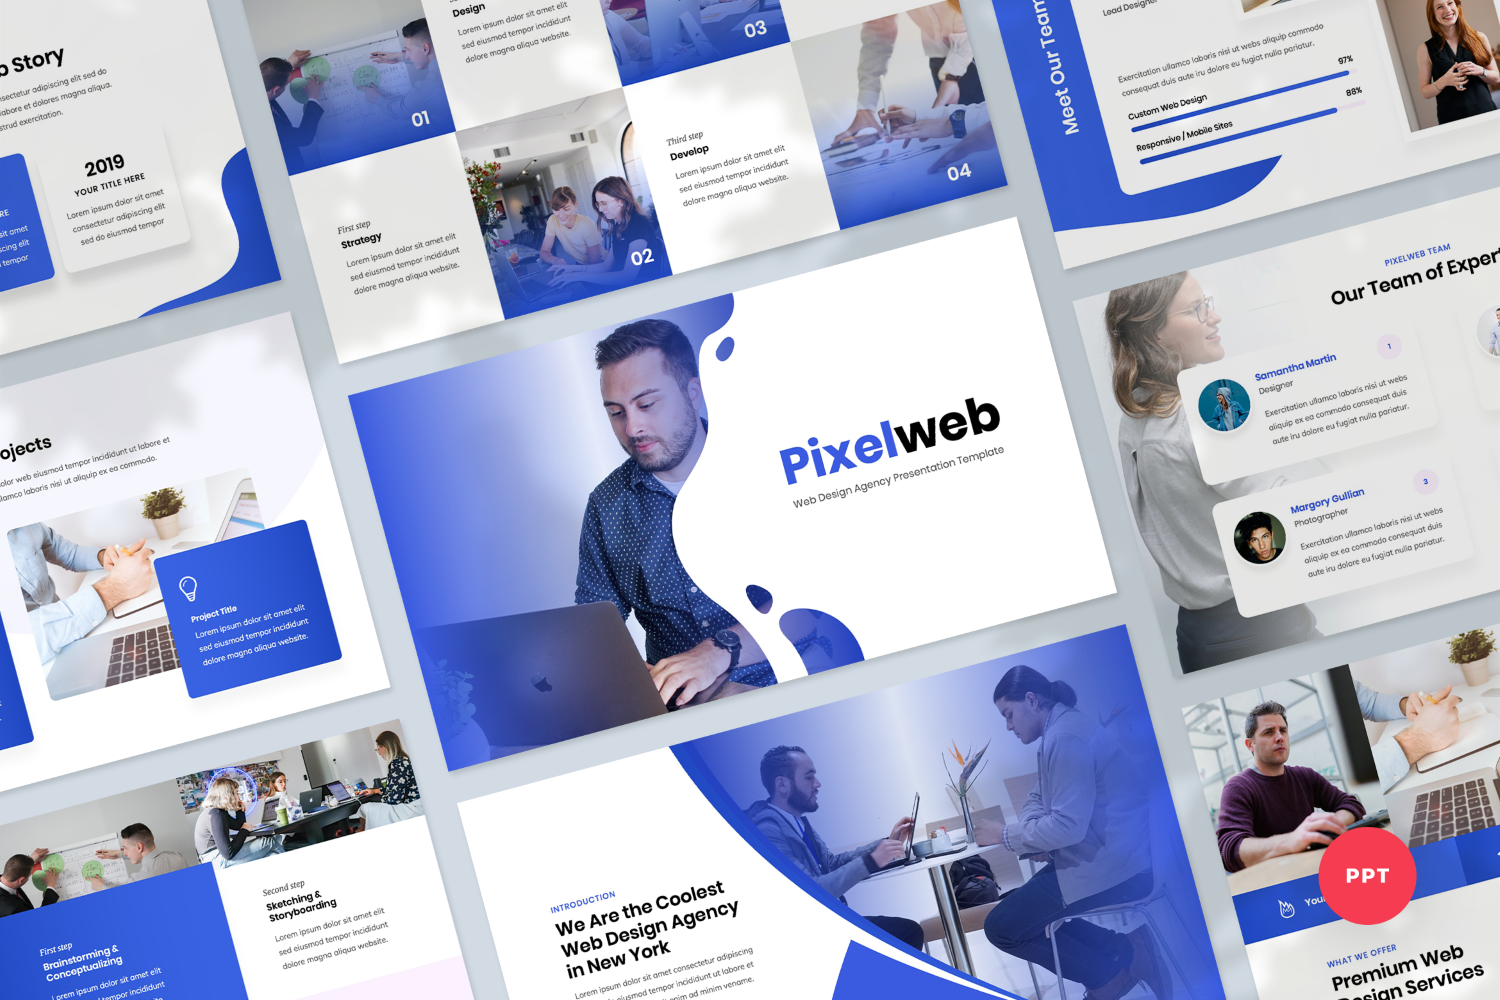 Web Design Agency Presentation PowerPoint Template